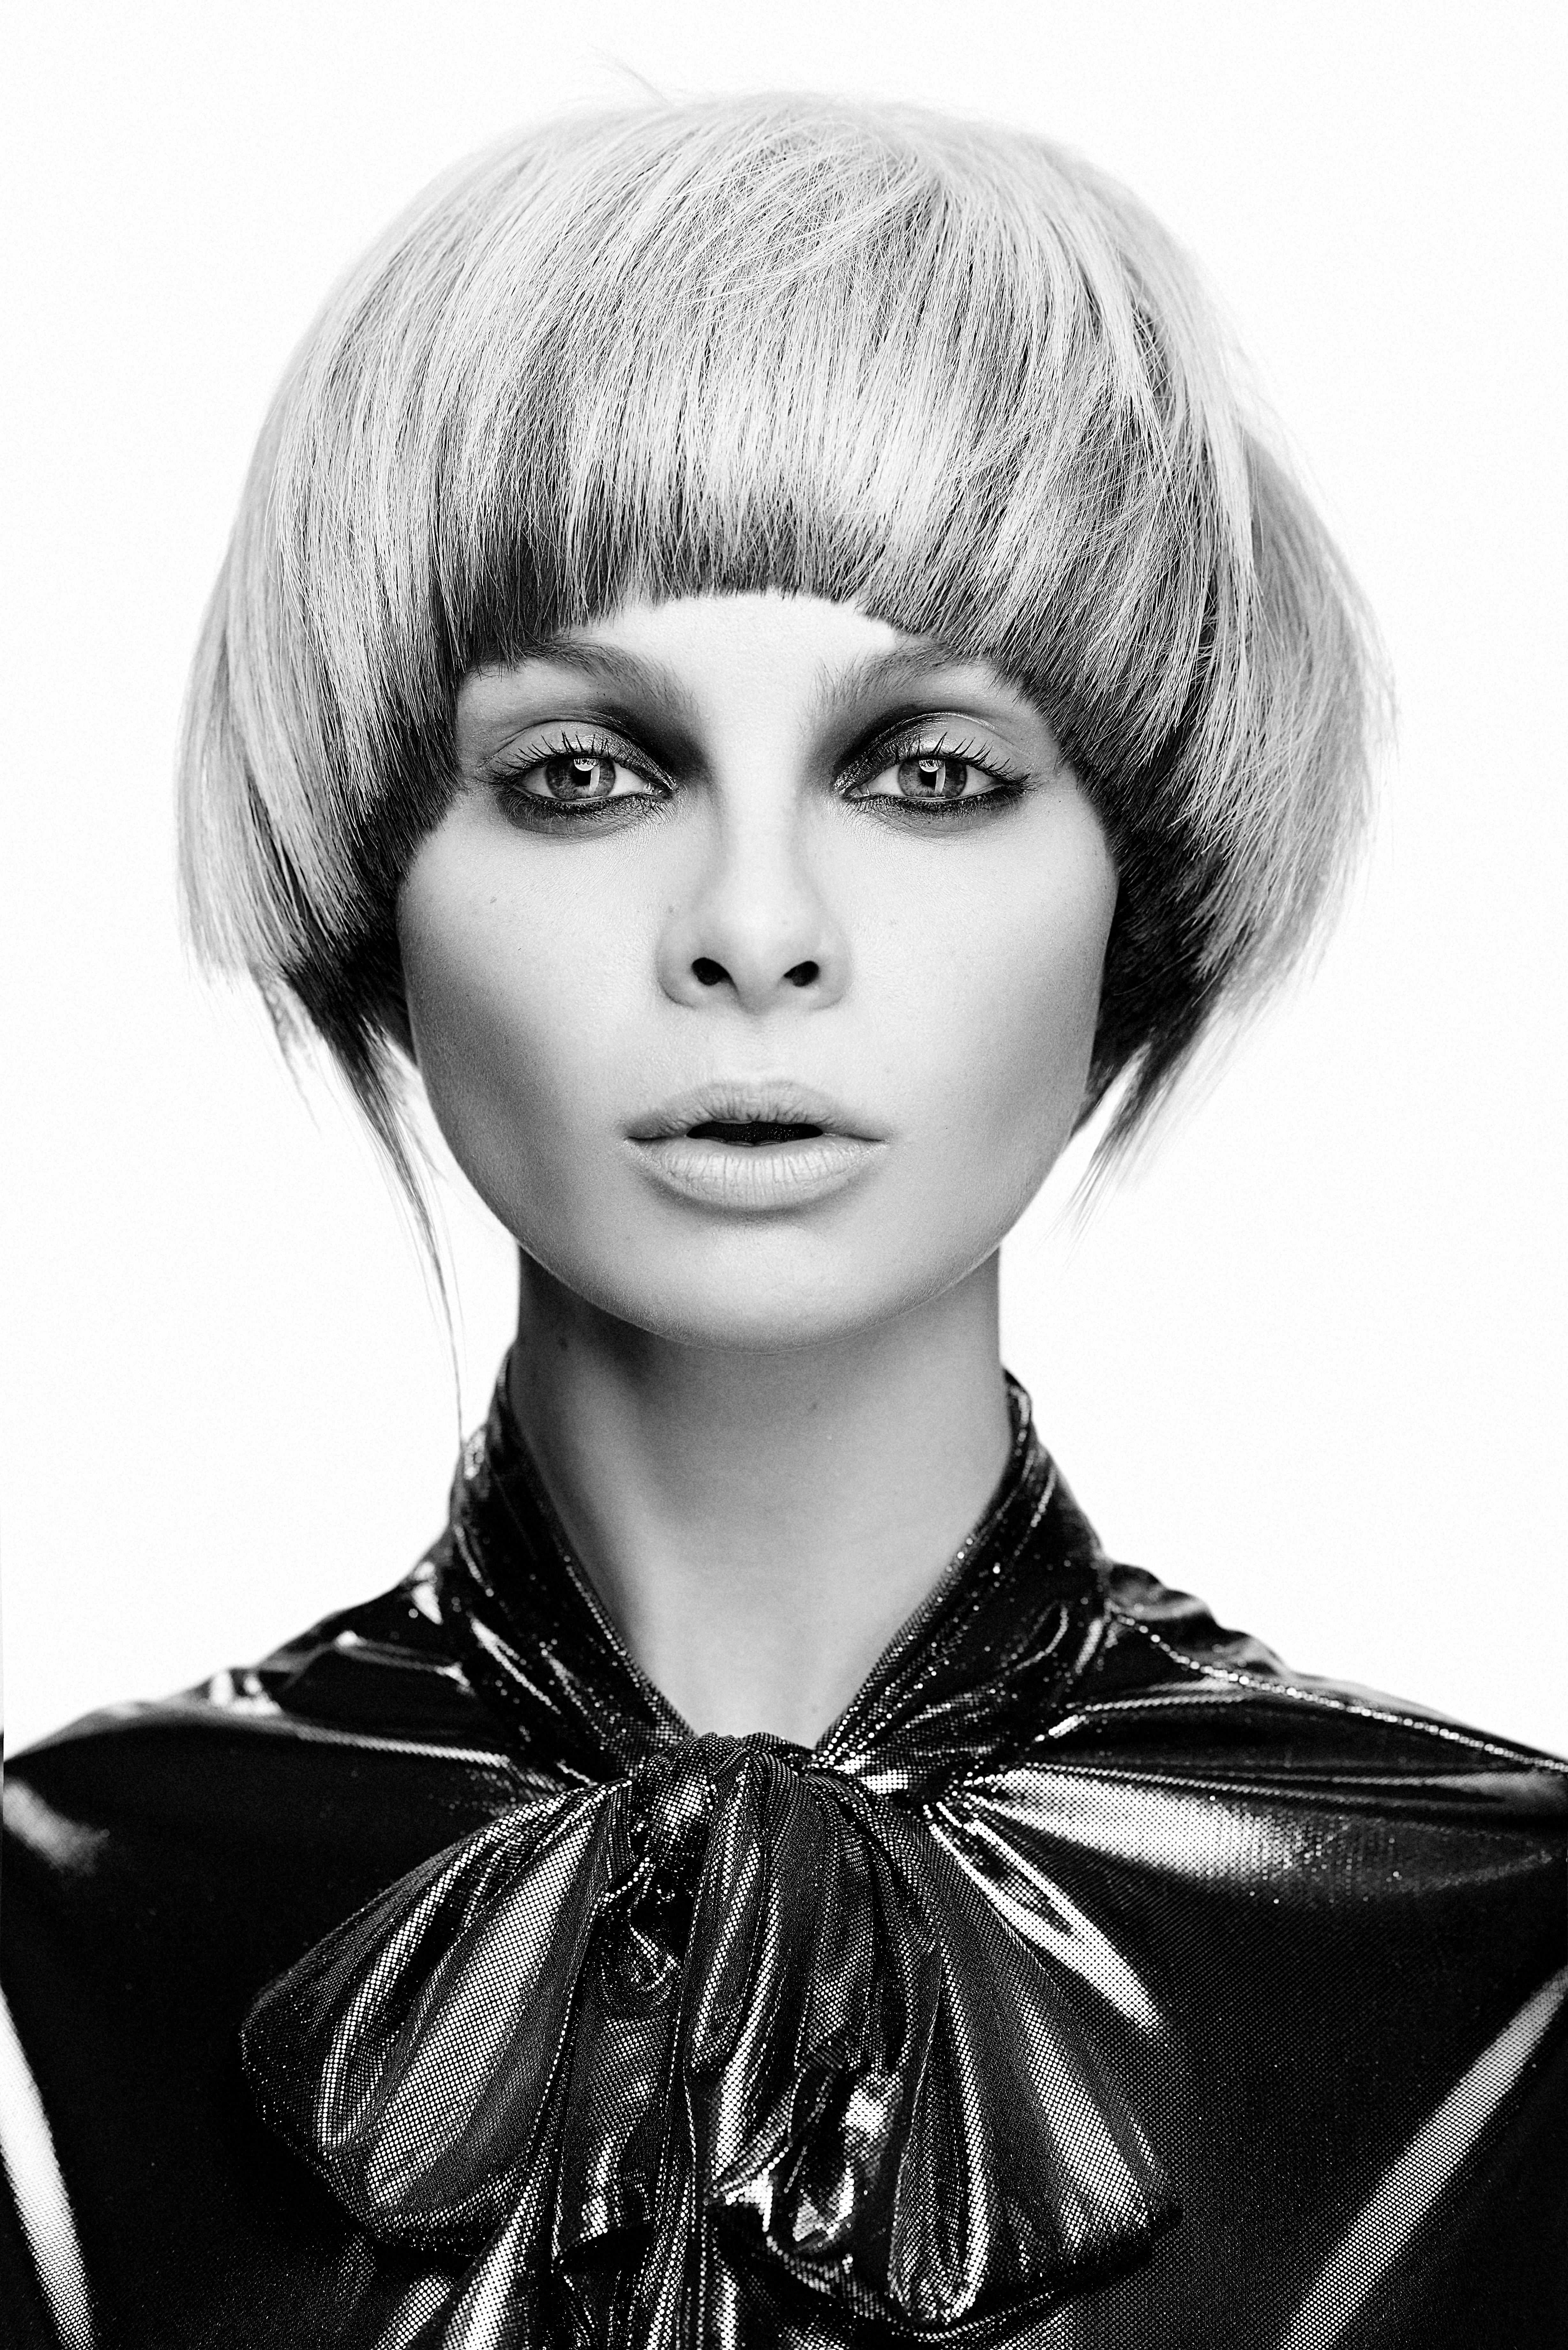 Coiffure : Ben Driscoll-Price, photos : Dan Thomas, maquillage : Lan Nguyen-Grealis, stylisme : Victoria Fiorina et Jamie Russell, images : FPA